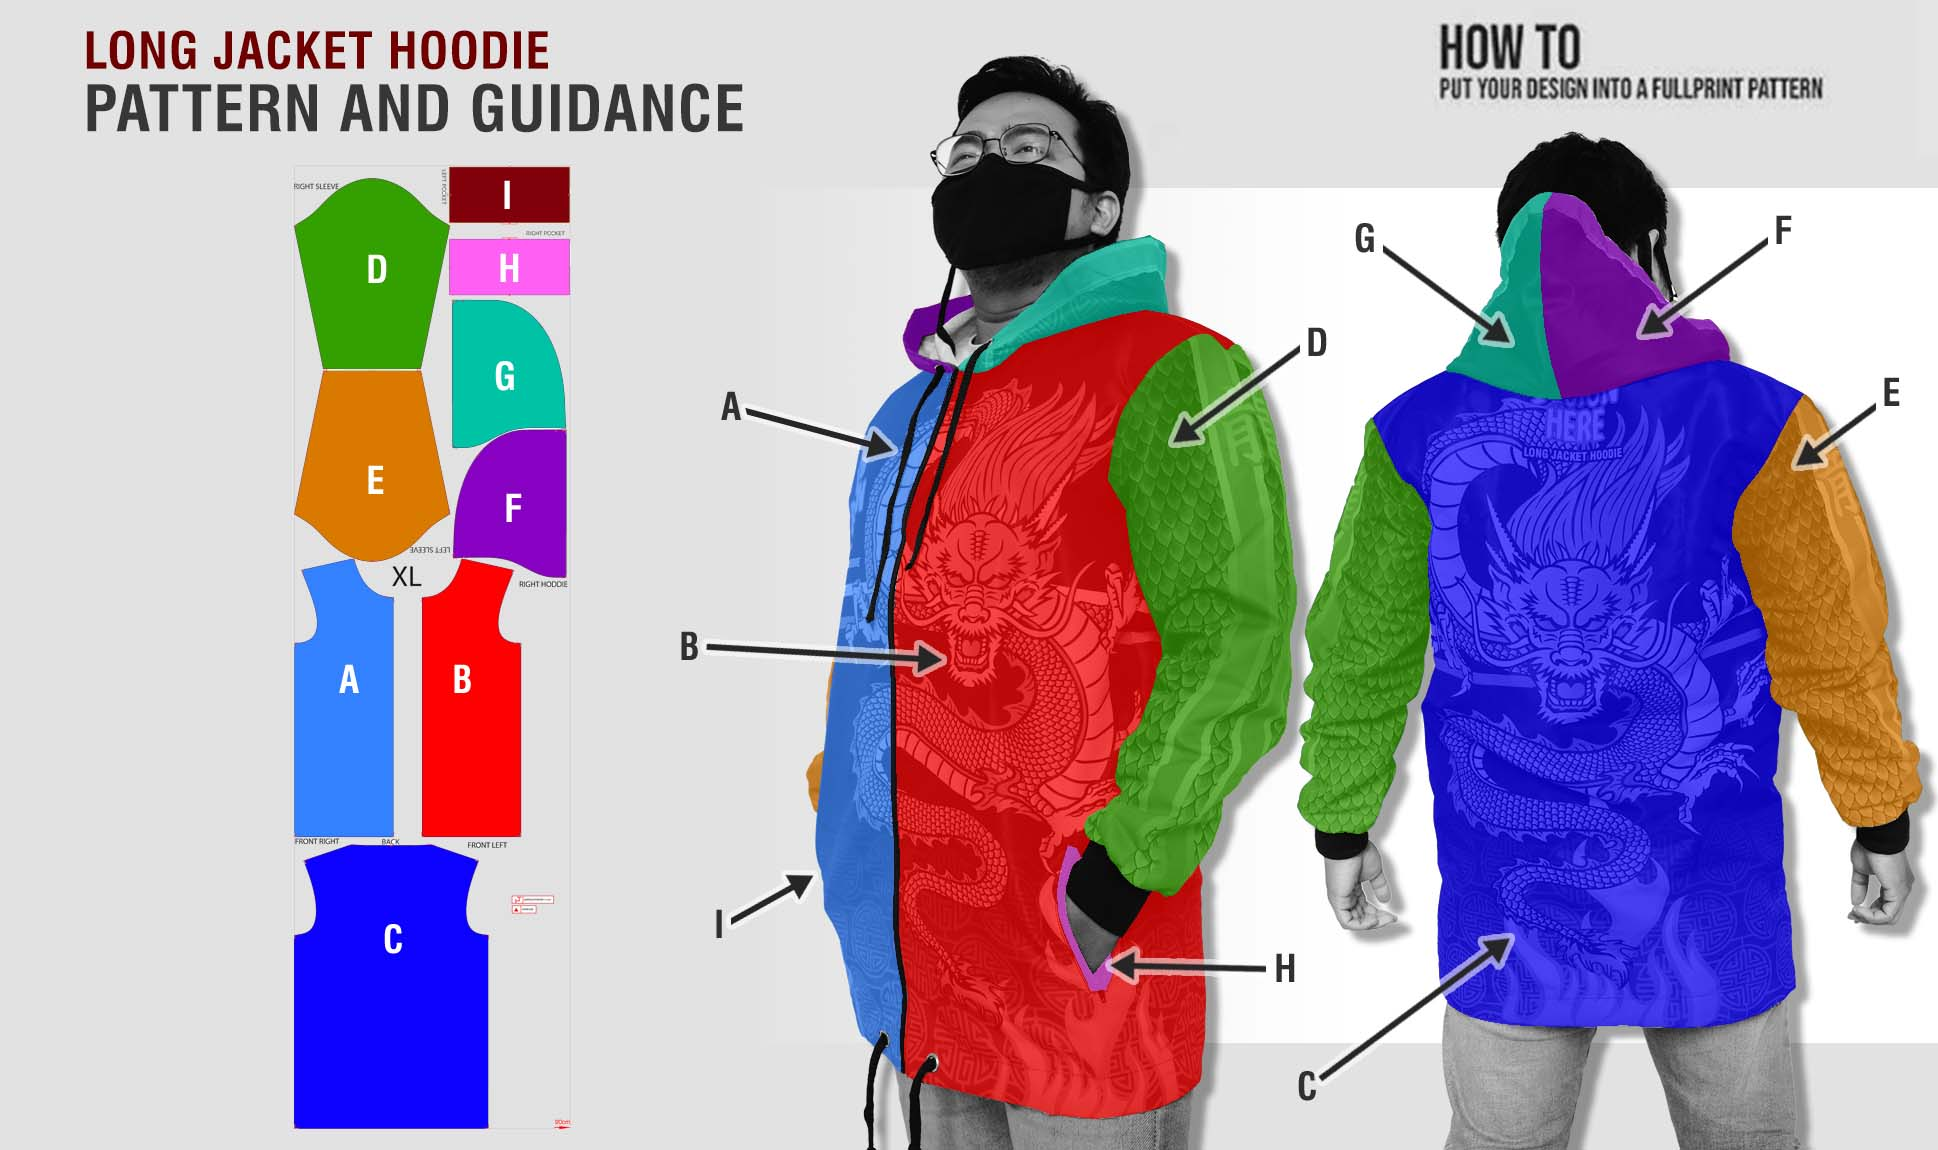 guidance pattern long jacket hoodie